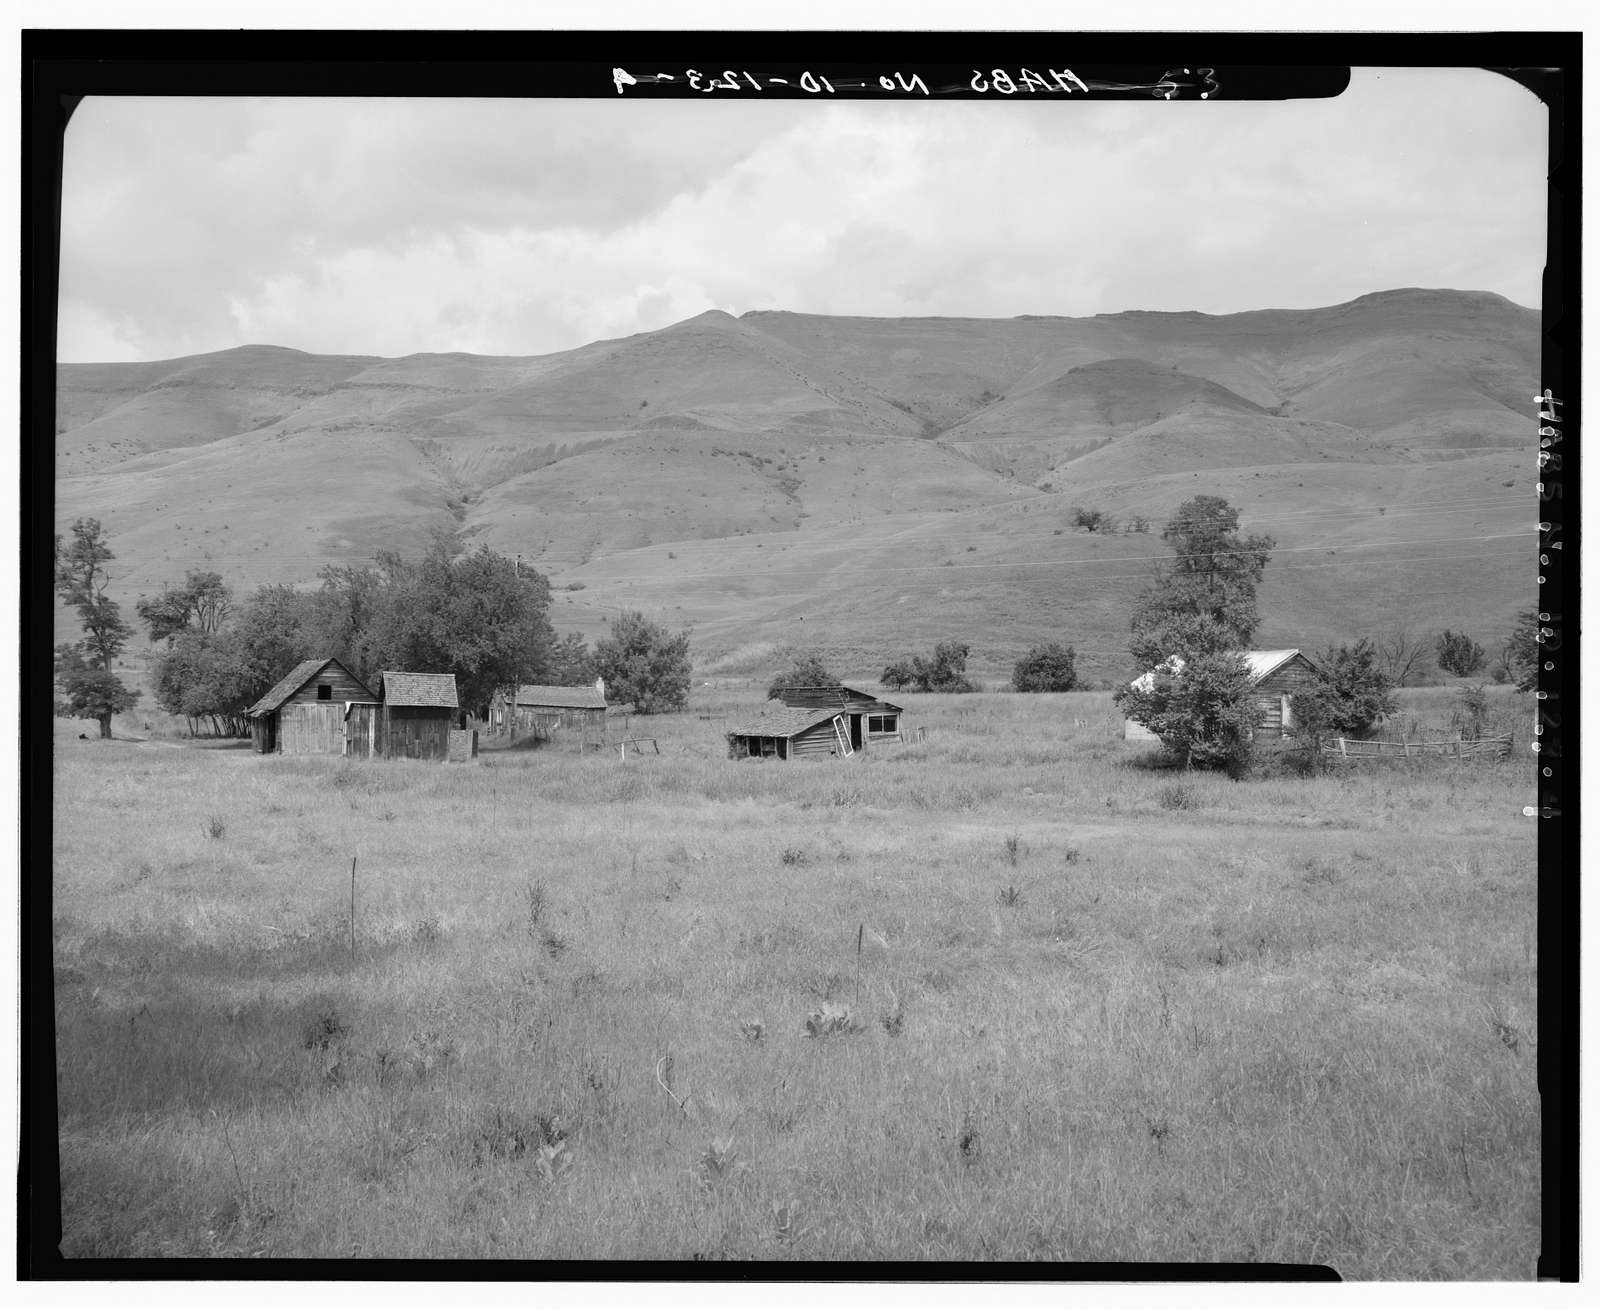 Price Ranch, White Bird, Idaho County, ID